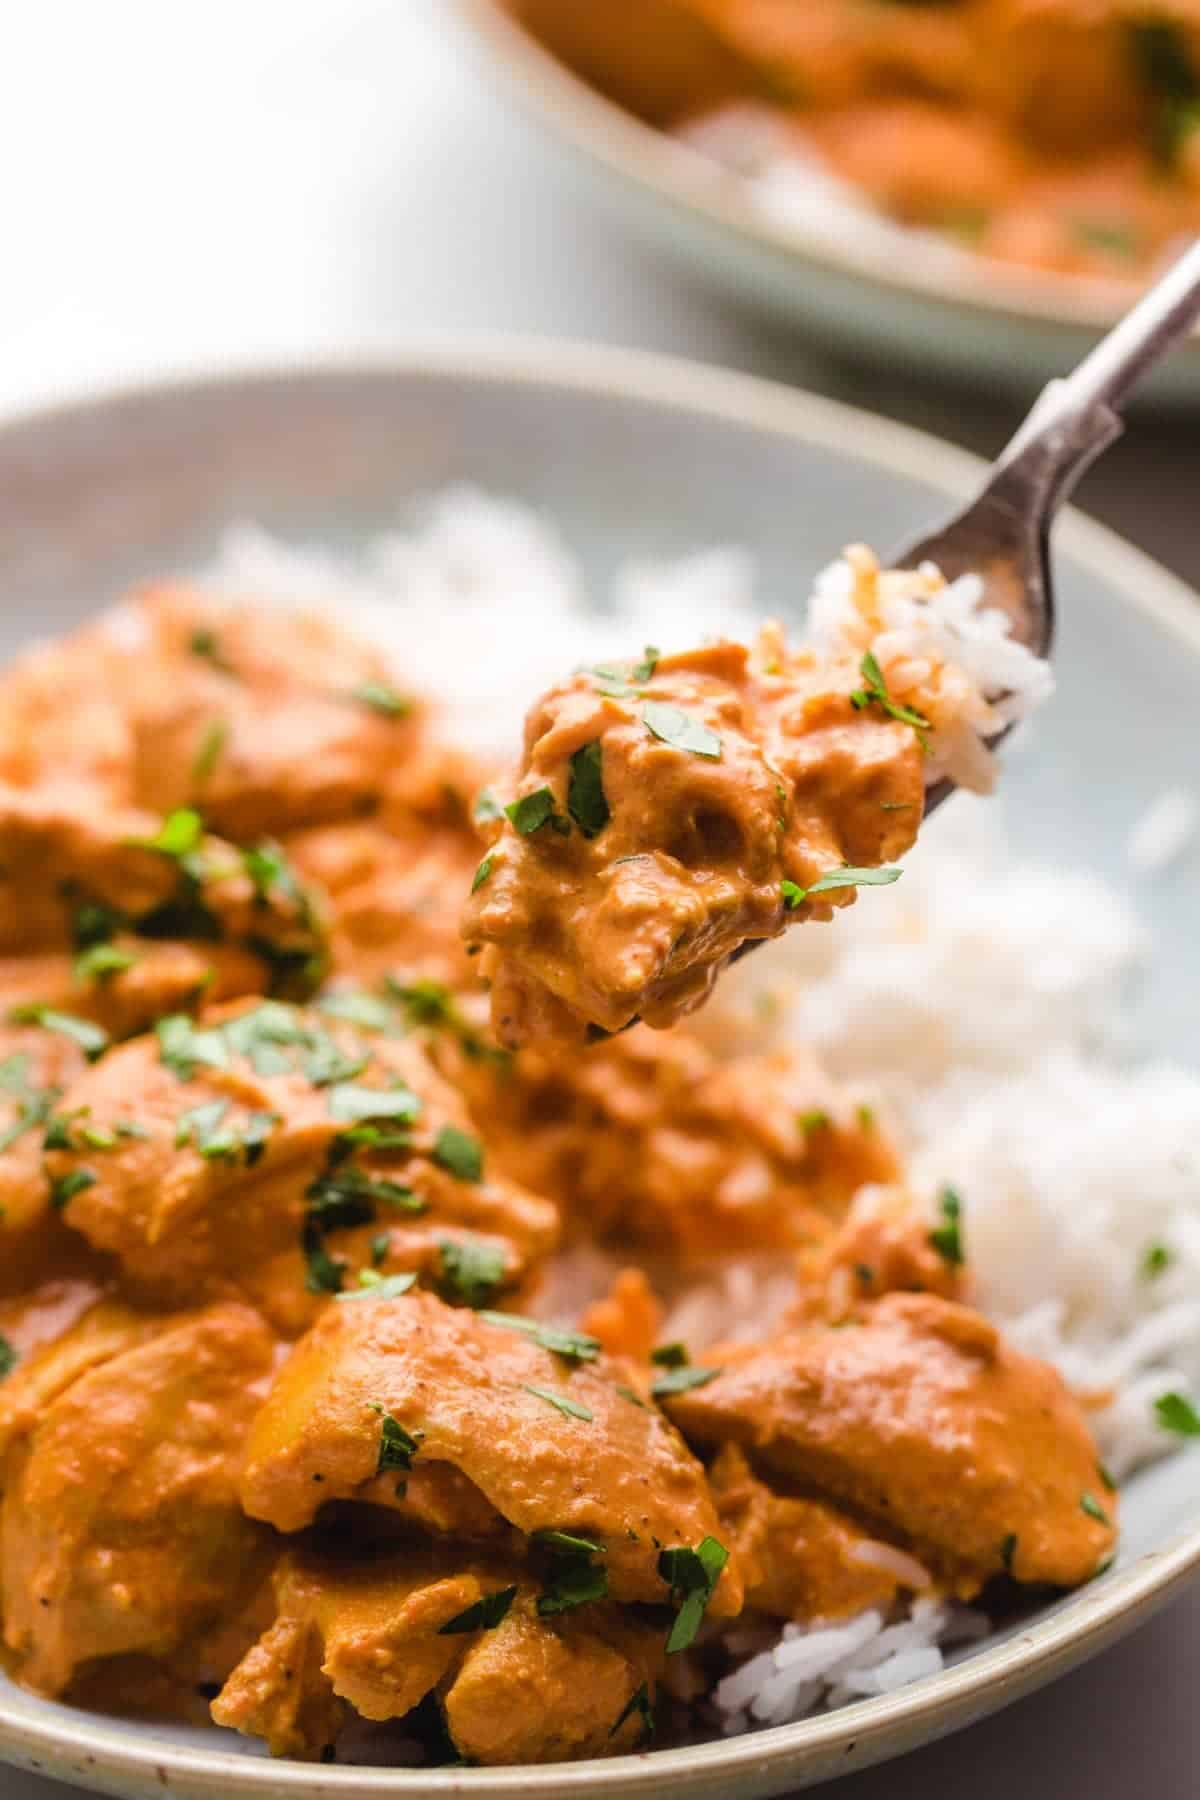 Eating chicken tikka masala with a fork